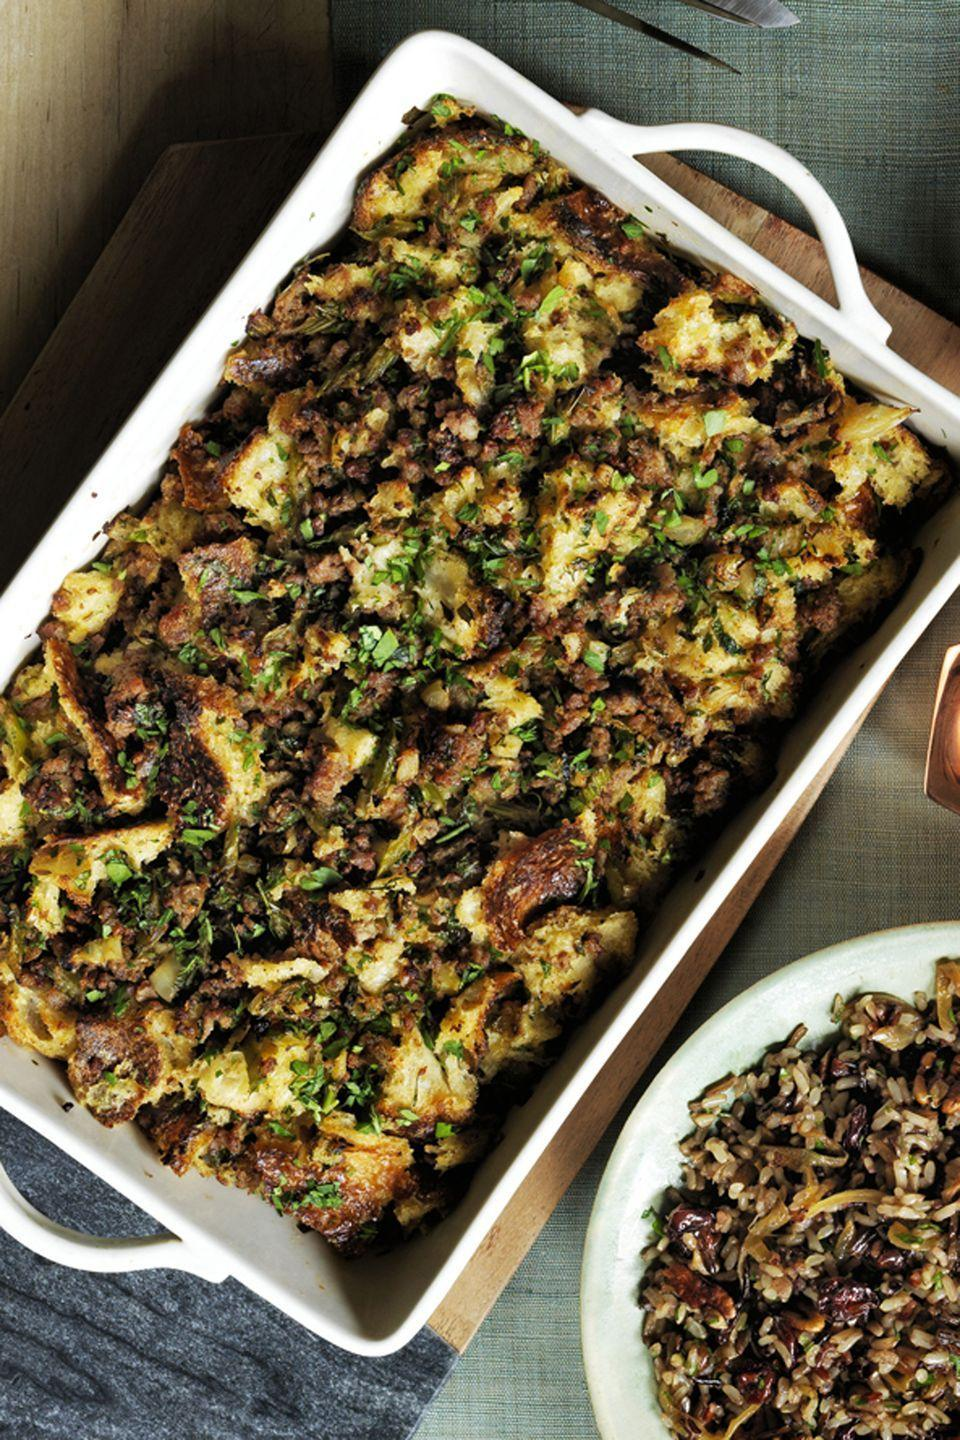 """<p>This sausage-filled stuffing is practically a meal in itself, but it makes for a tasty Thanksgiving side dish.</p><p><em><strong><a href=""""https://www.womansday.com/food-recipes/food-drinks/recipes/a60486/sourdough-stuffing-with-sausage-and-herbs-recipe/"""" rel=""""nofollow noopener"""" target=""""_blank"""" data-ylk=""""slk:Get the Sourdough Stuffing with Sausage and Herbs recipe."""" class=""""link rapid-noclick-resp"""">Get the Sourdough Stuffing with Sausage and Herbs recipe.</a></strong></em> </p>"""